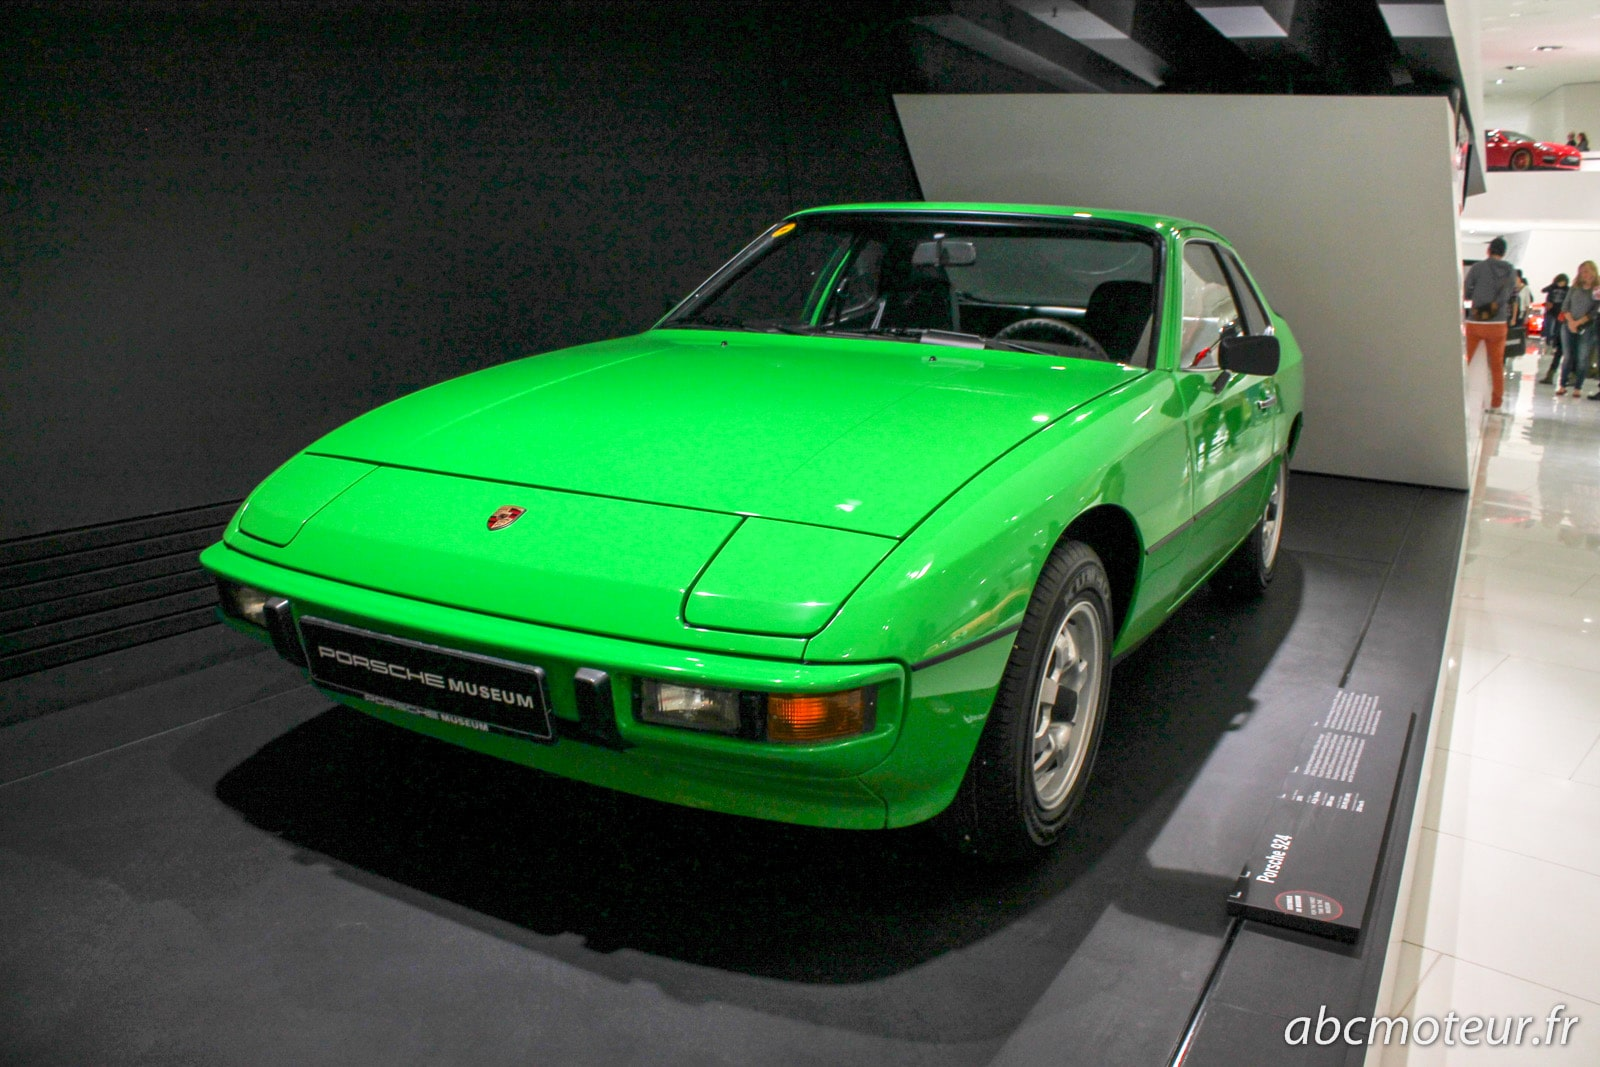 The Porsche 924 Owners Club • View topic - early 924 wanted